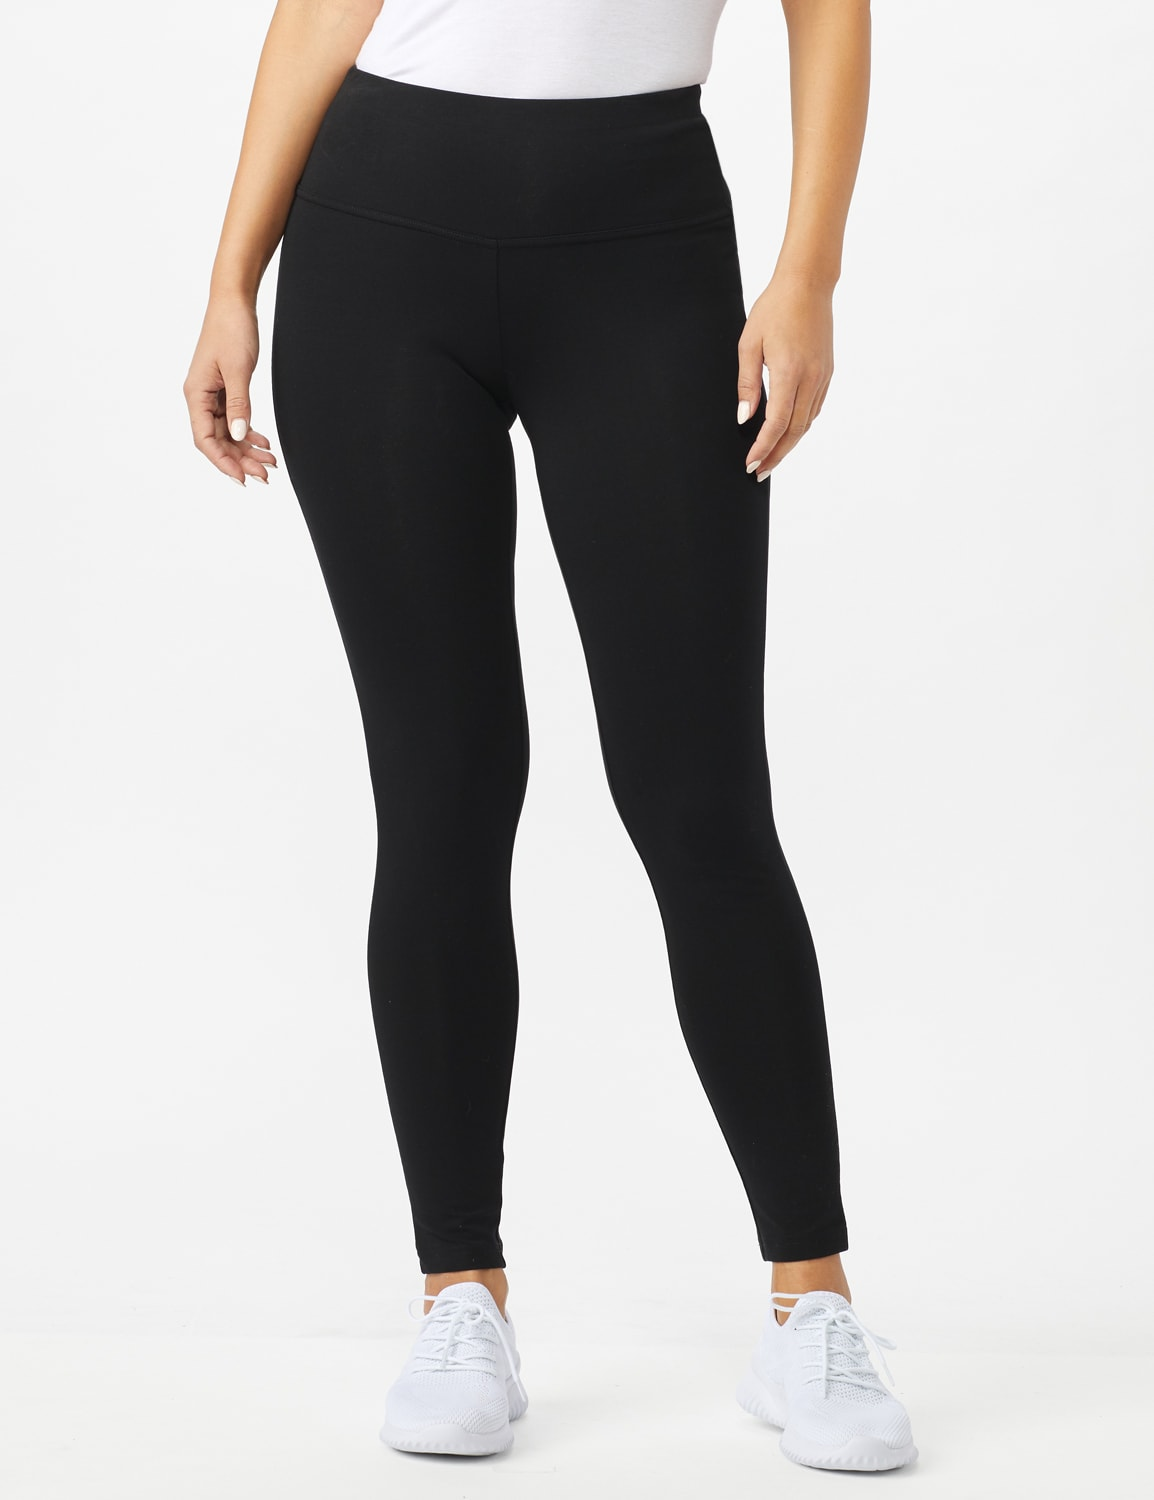 Tummy Control Legging - Black - Front